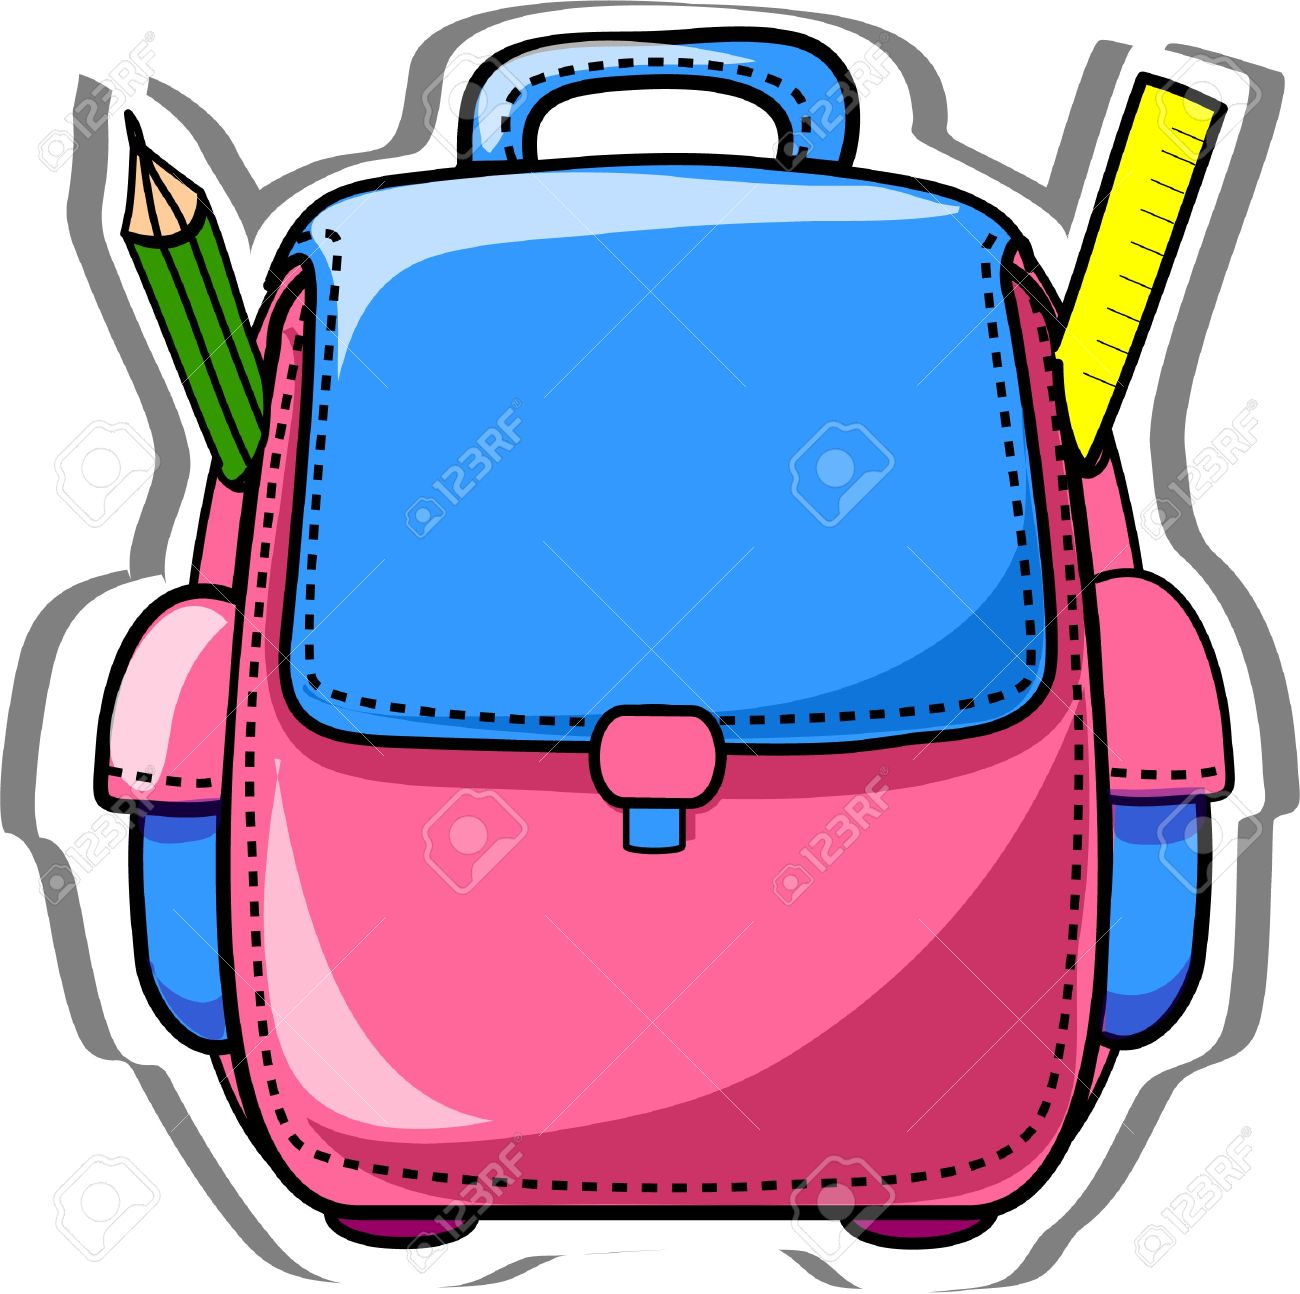 Bag clipart #5, Download drawings